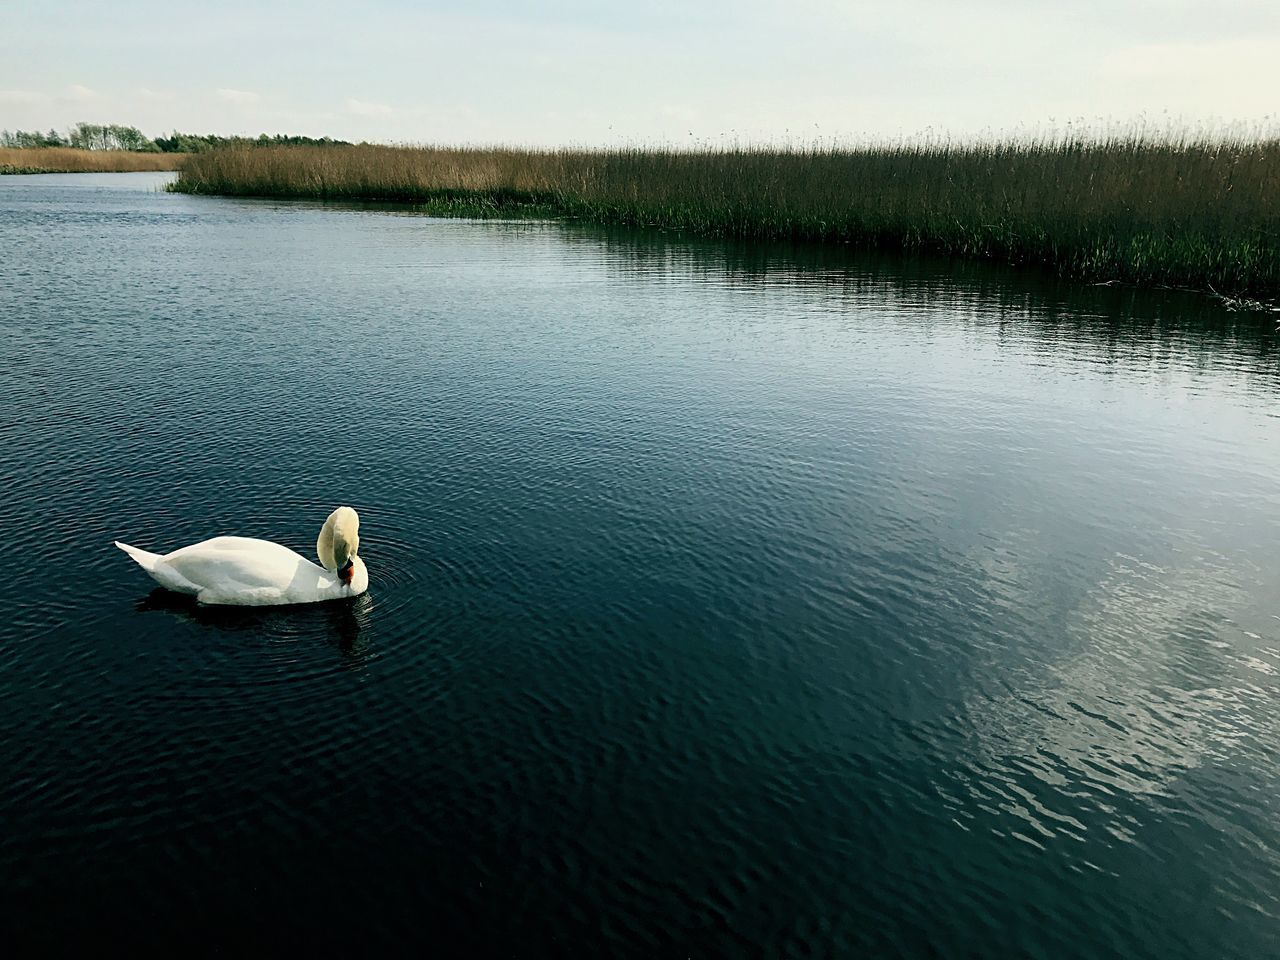 Animal Themes Animals In The Wild Swimming Water Lake Bird Swan Nature Water Bird One Animal Waterfront Outdoors White Swan No People Beauty In Nature Floating On Water Day The Secret Spaces Long Goodbye EyeEmNewHere